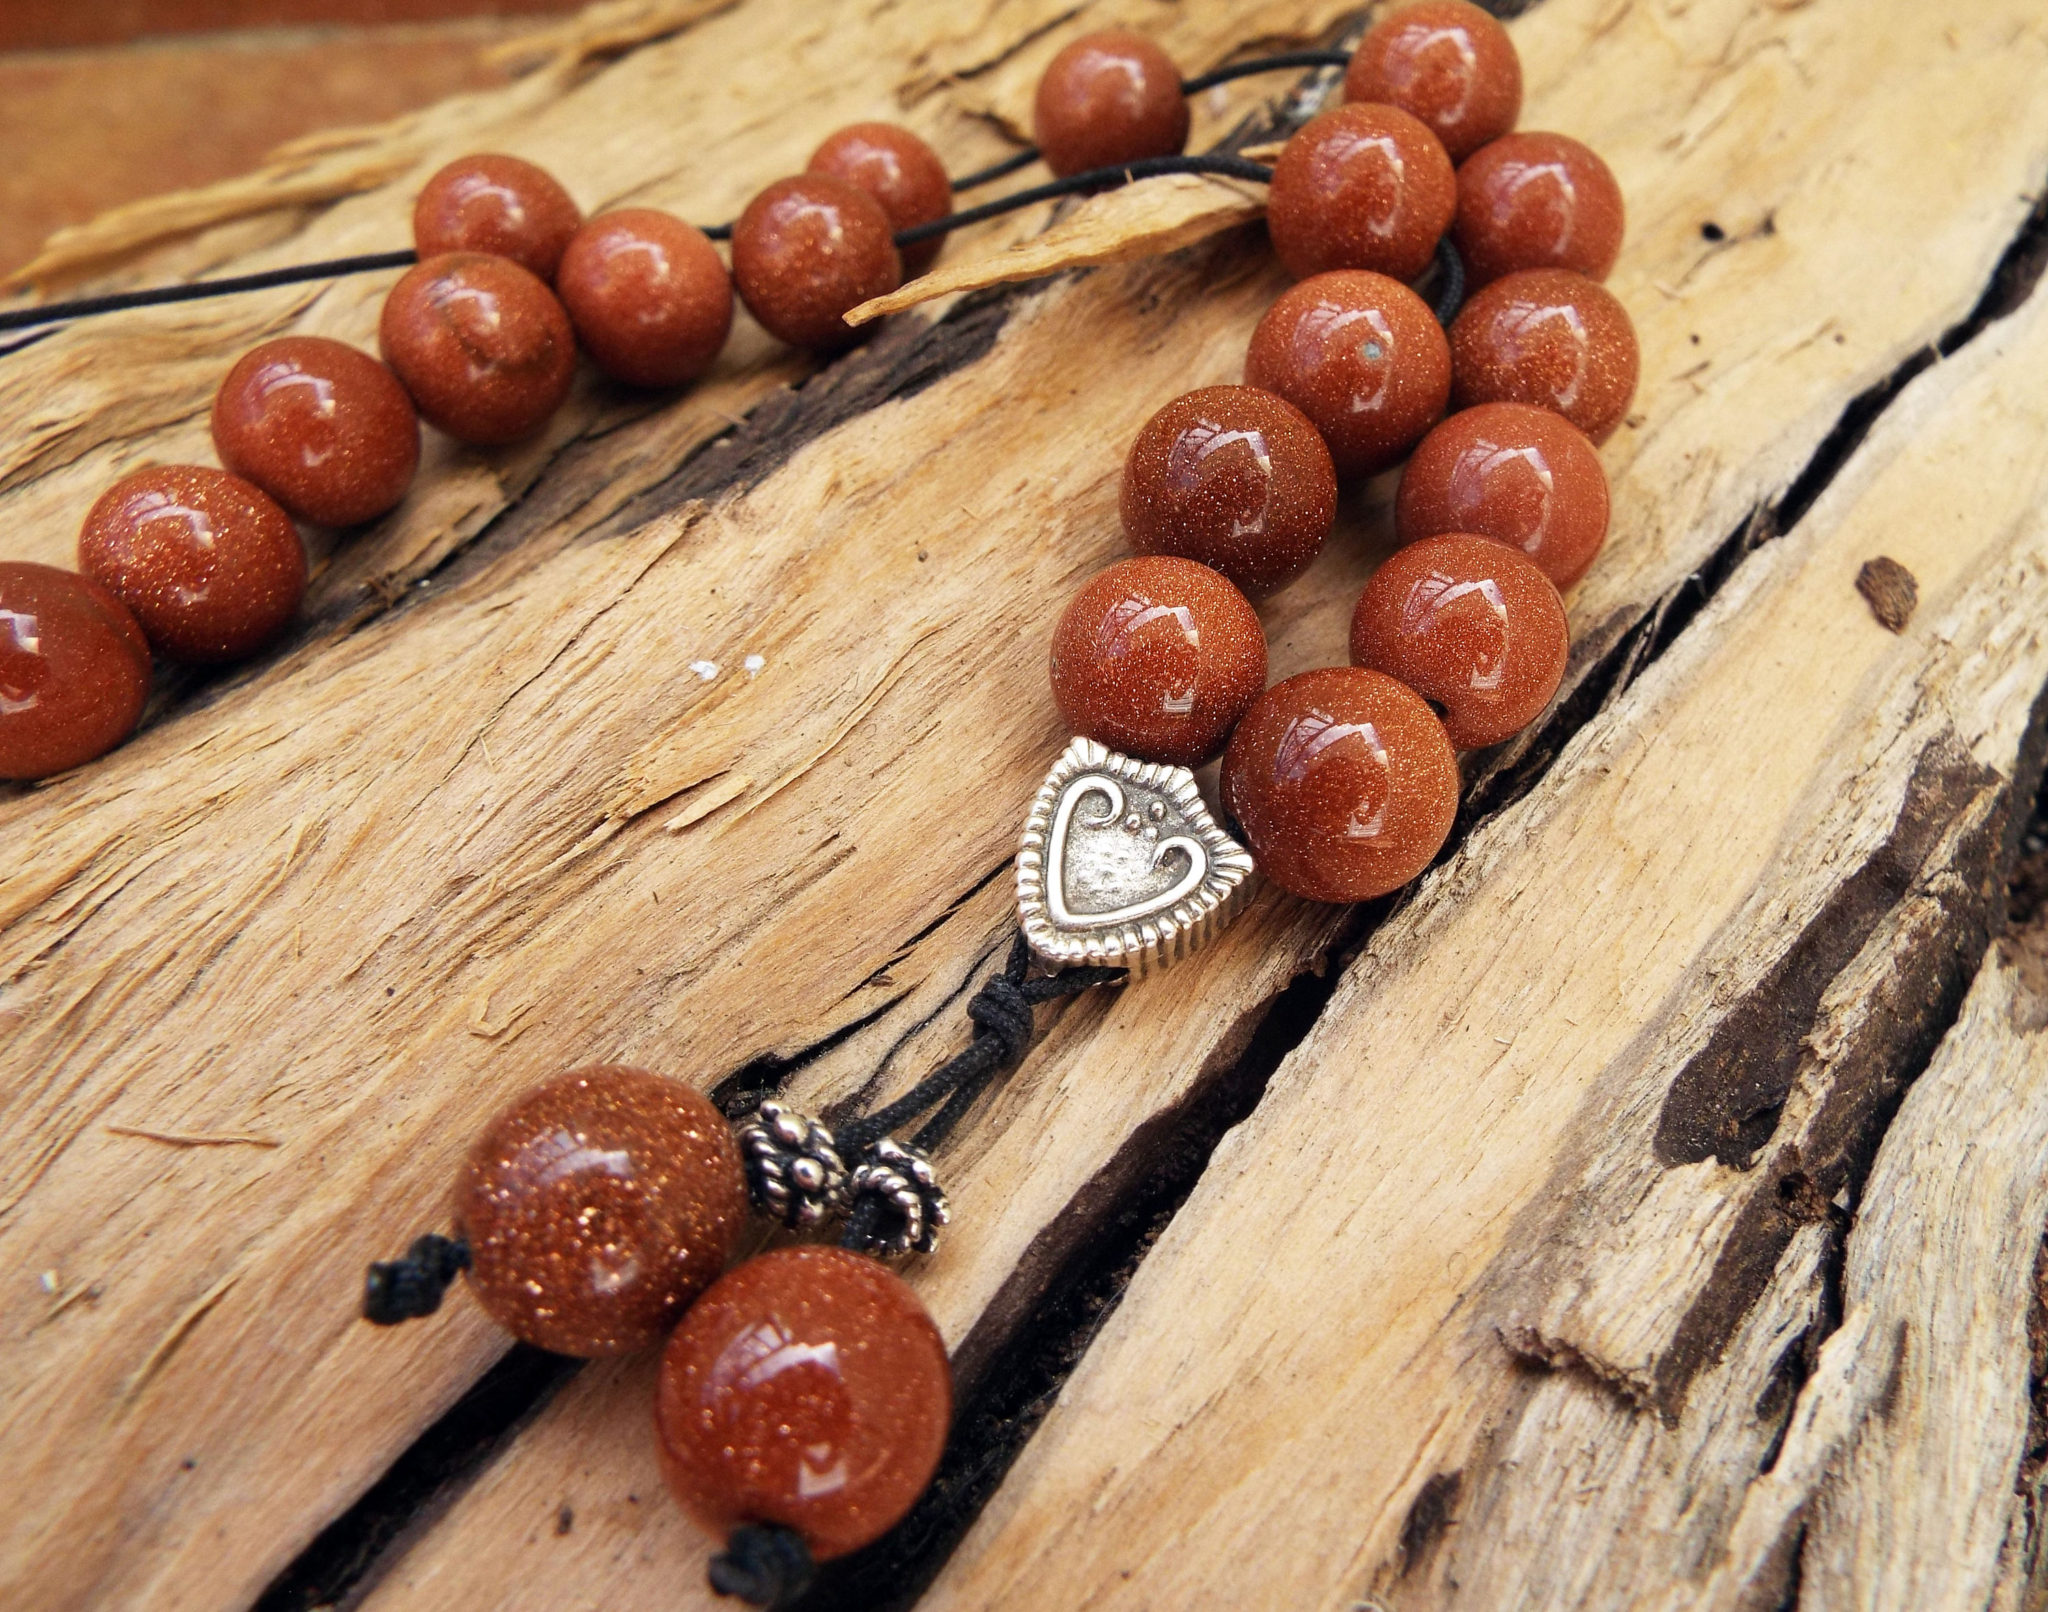 Komboloi Greek Worry Beads Sandstone Prayer Beads Rosary Beads Turkish Tasbih Handmade Gemstone